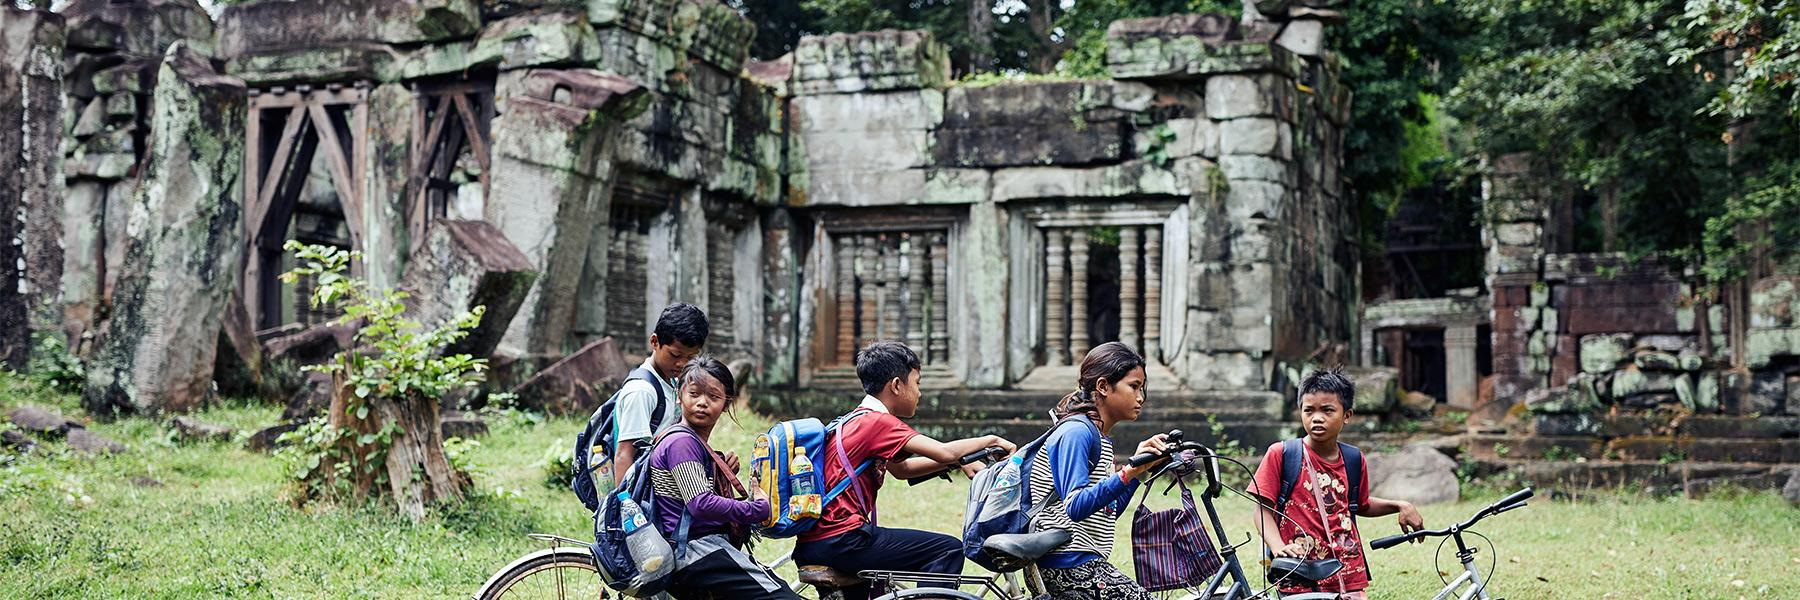 Why Visit The Temples Of Angkor?